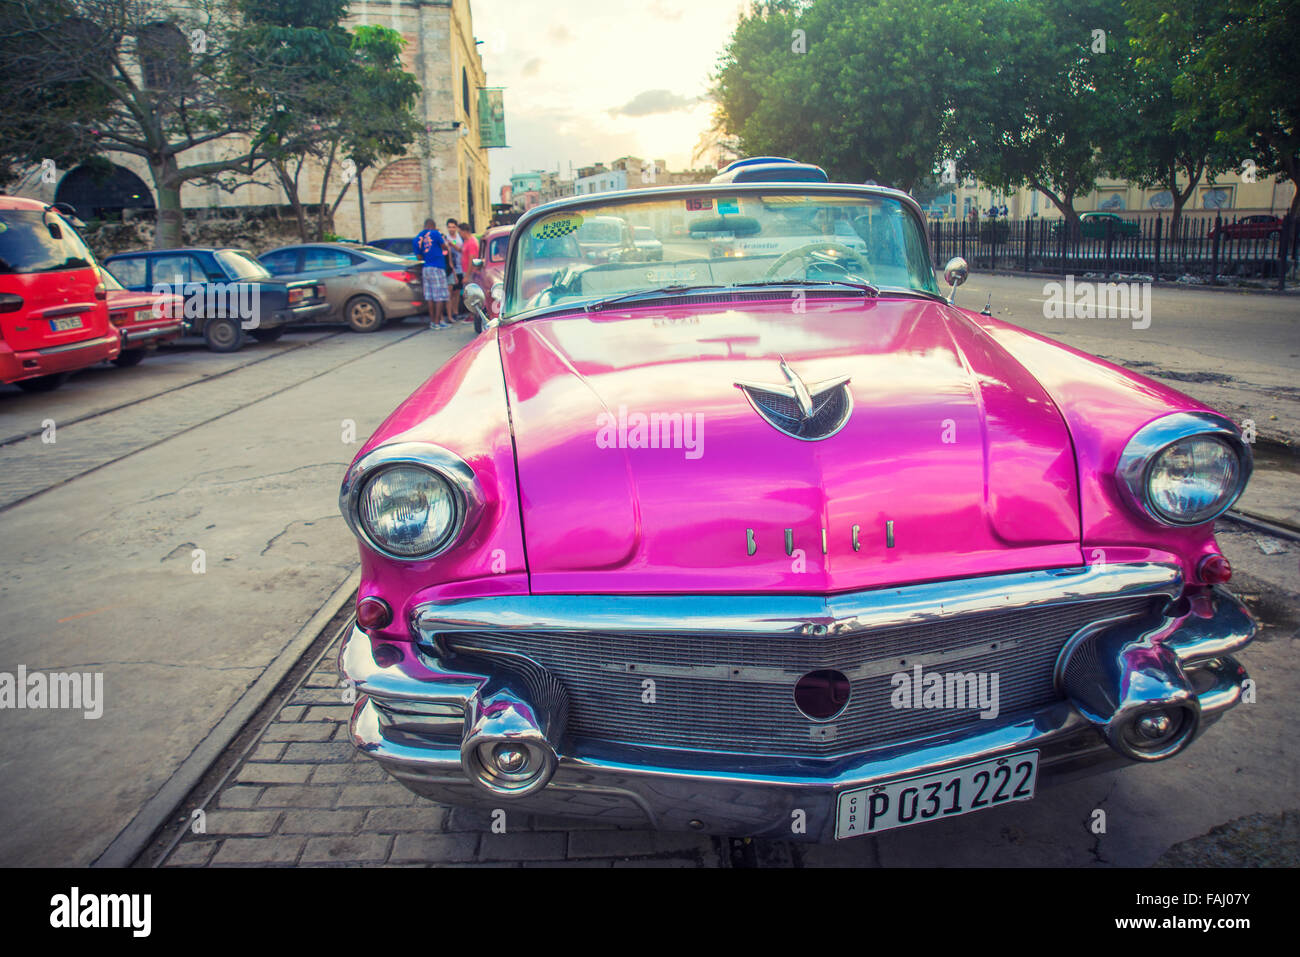 HAVANA, CUBA - 4 DEC, 2015. Pink vintage classic American car, commonly used as private taxi parked in Havana street. Stock Photo